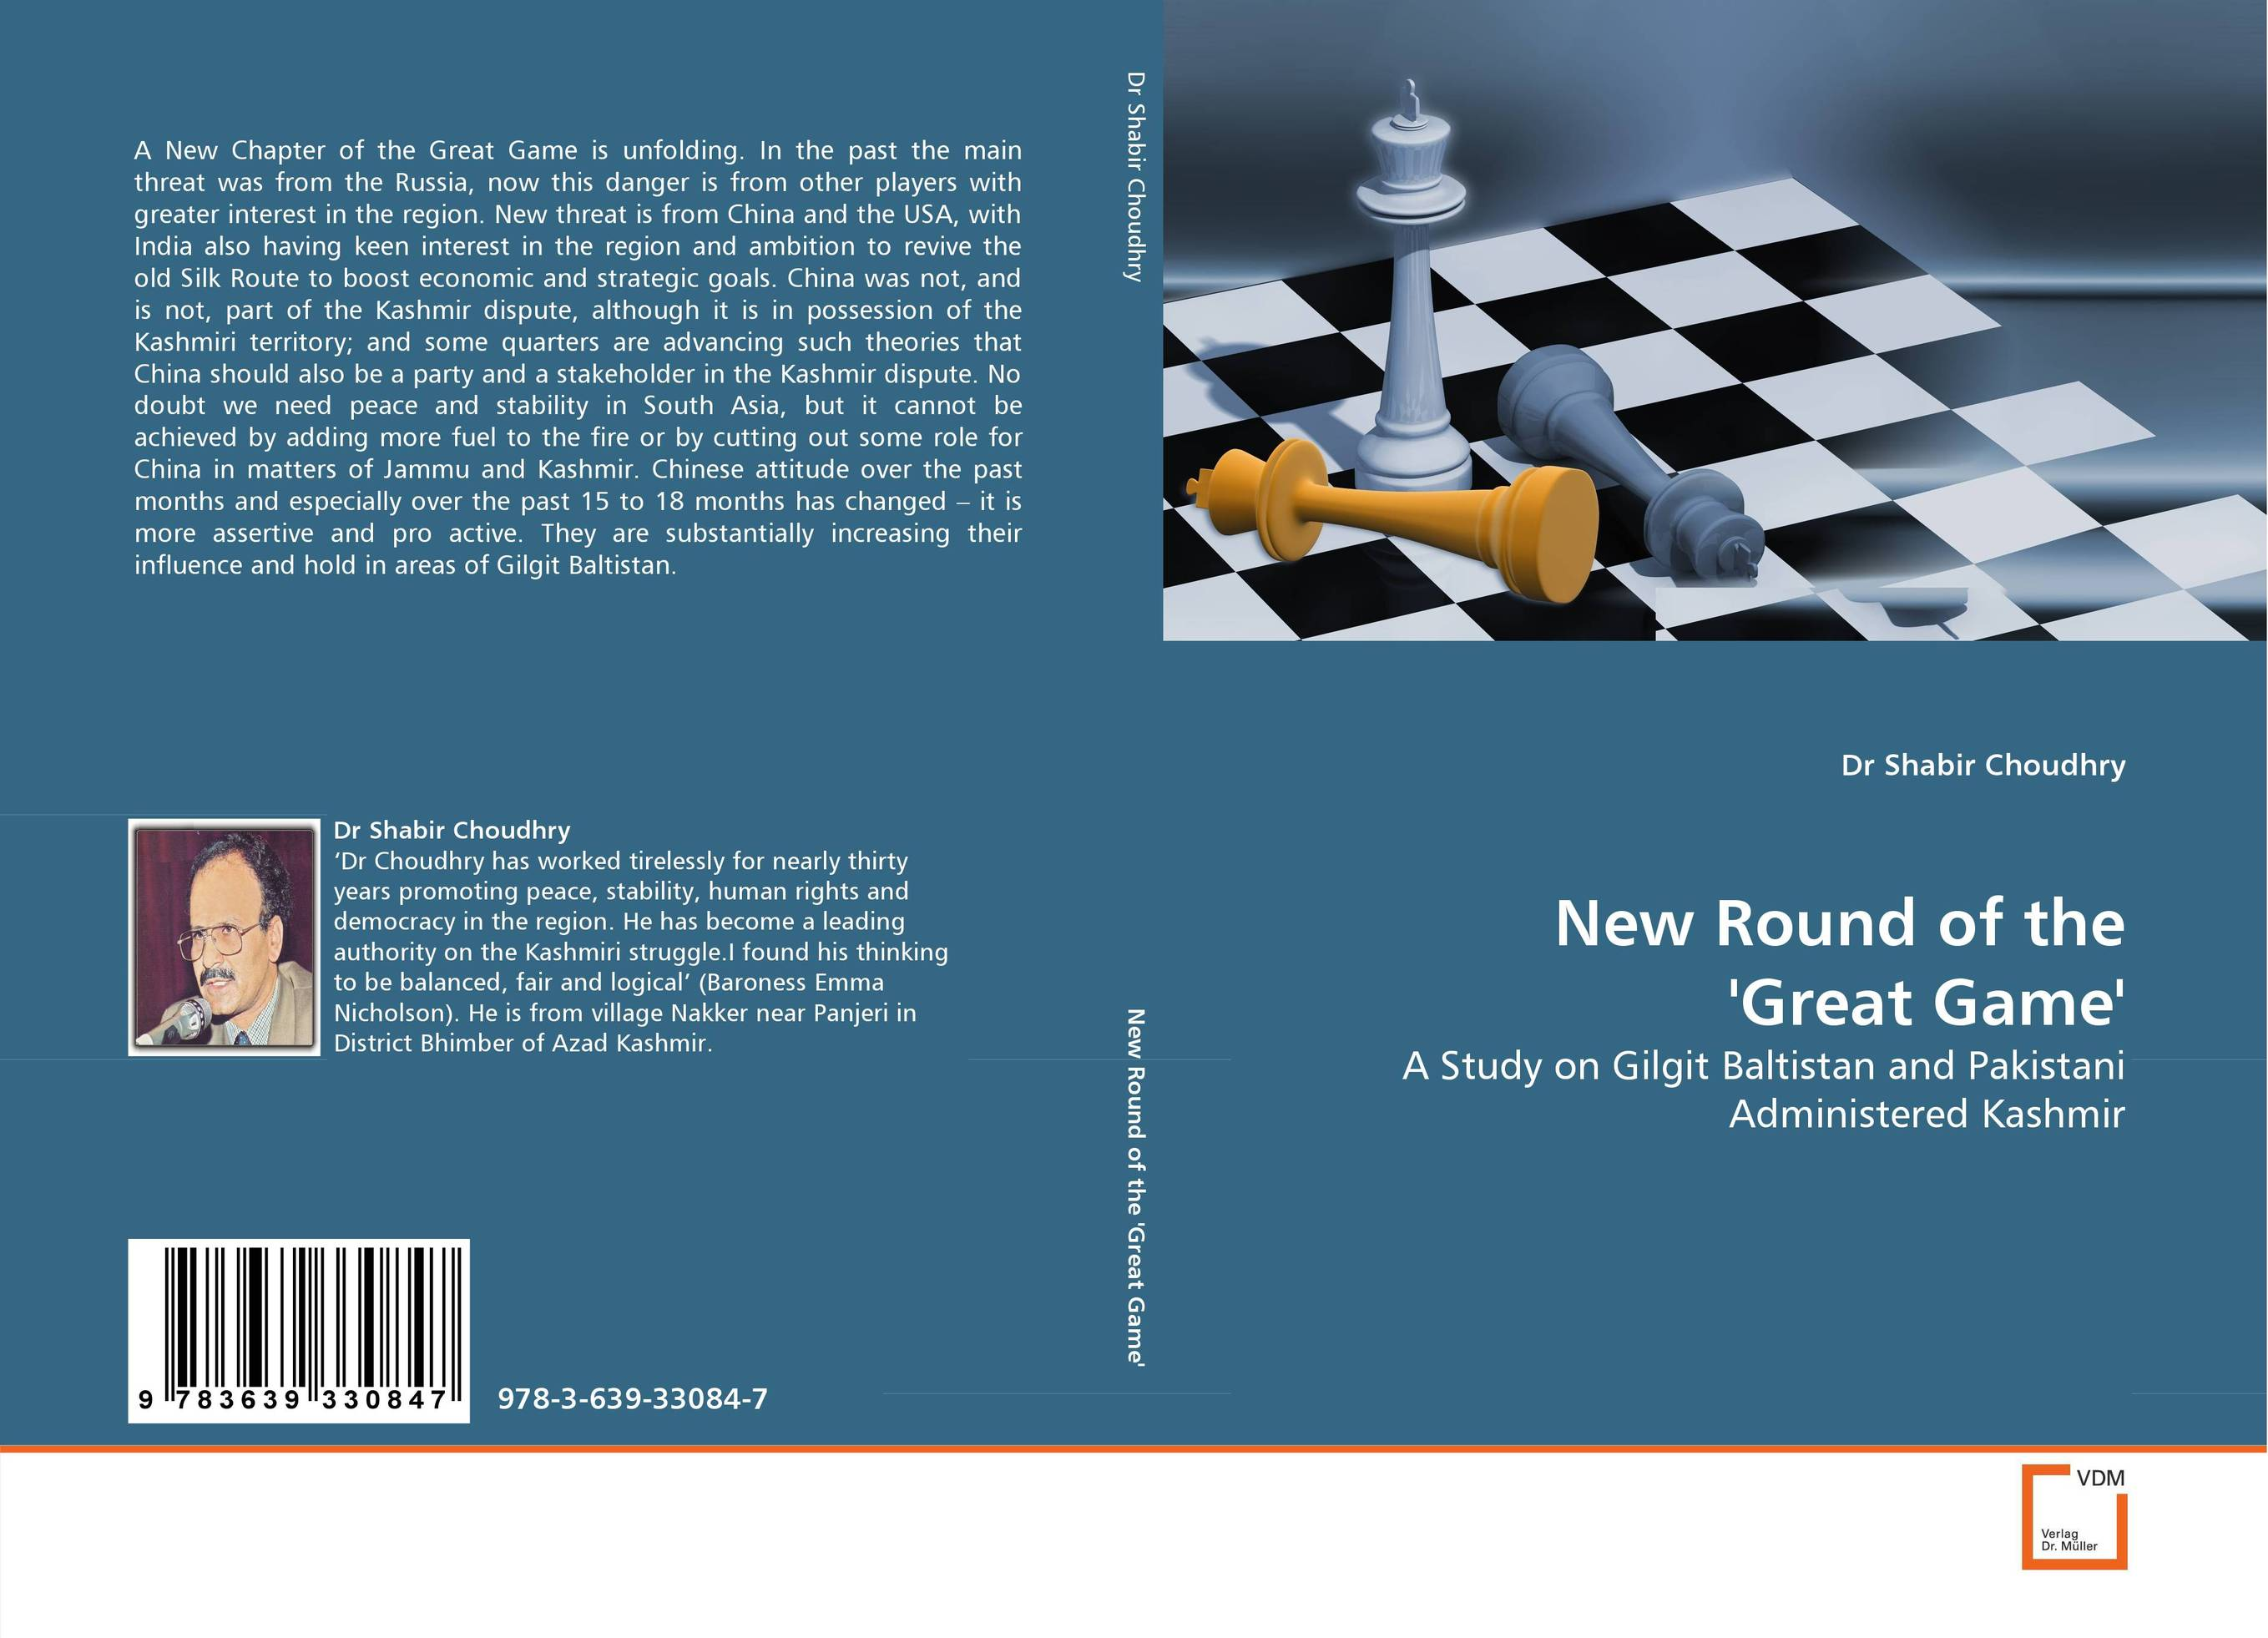 New Round of the ''Great Game'' theories and practices of human resource management from quran